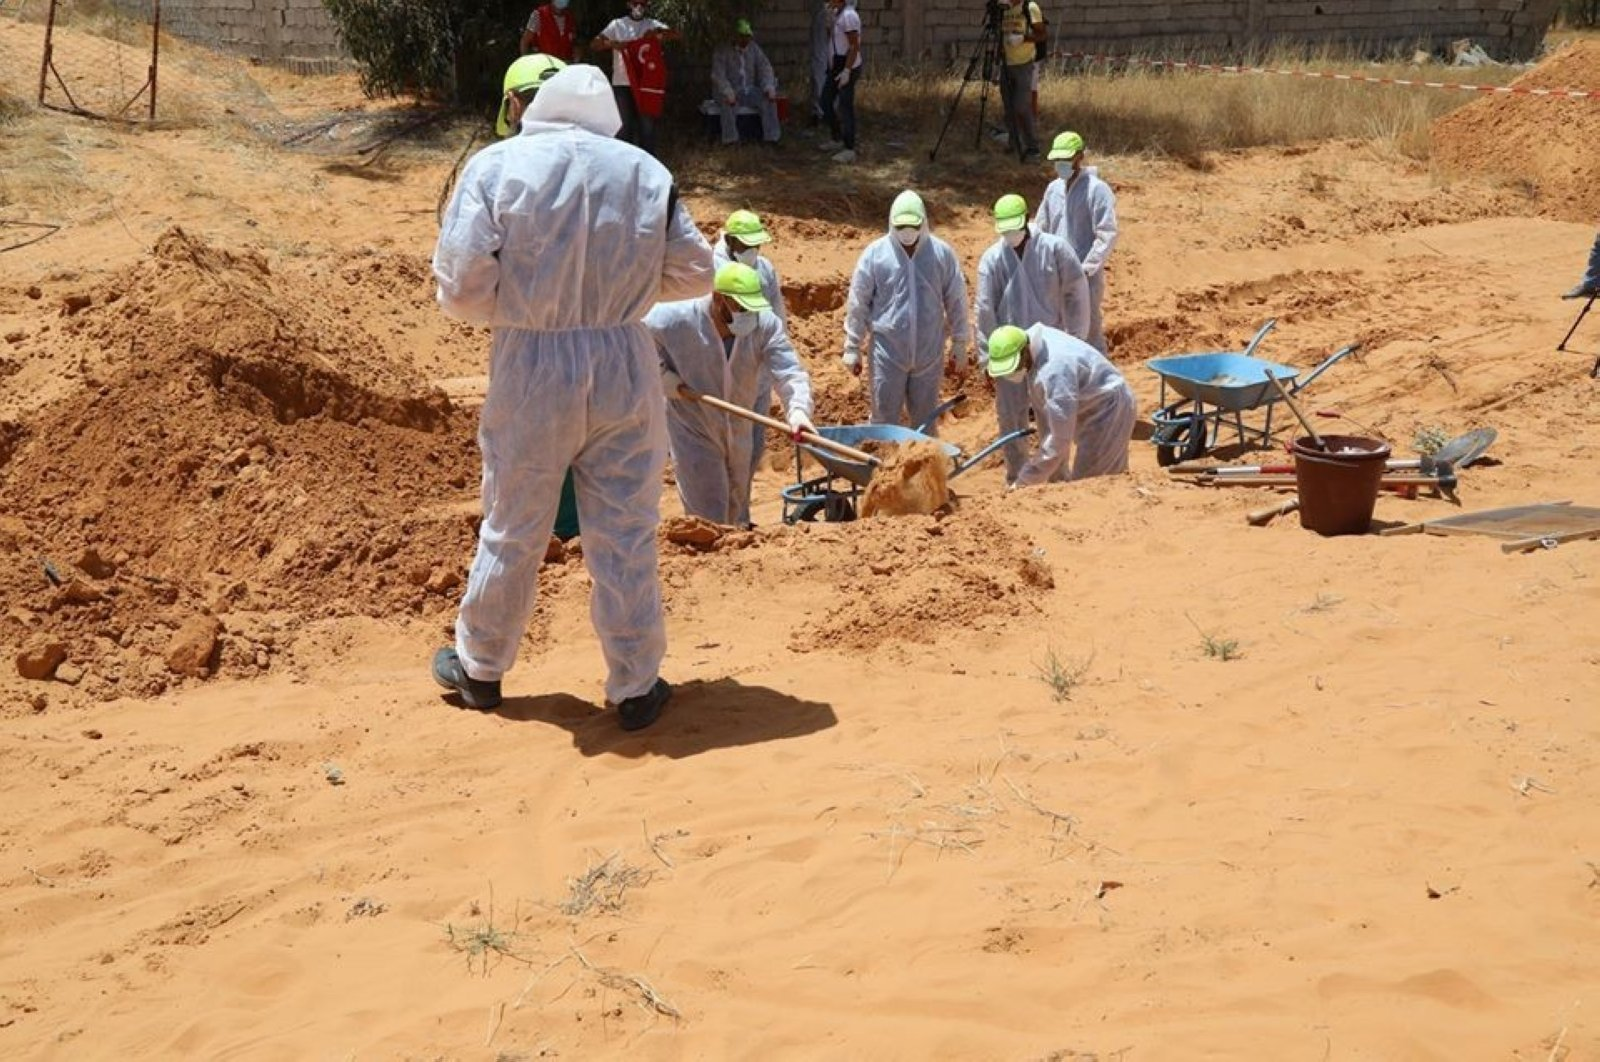 Mass graves have been found in areas liberated by Haftar forces in Libya. (İHA Photo)